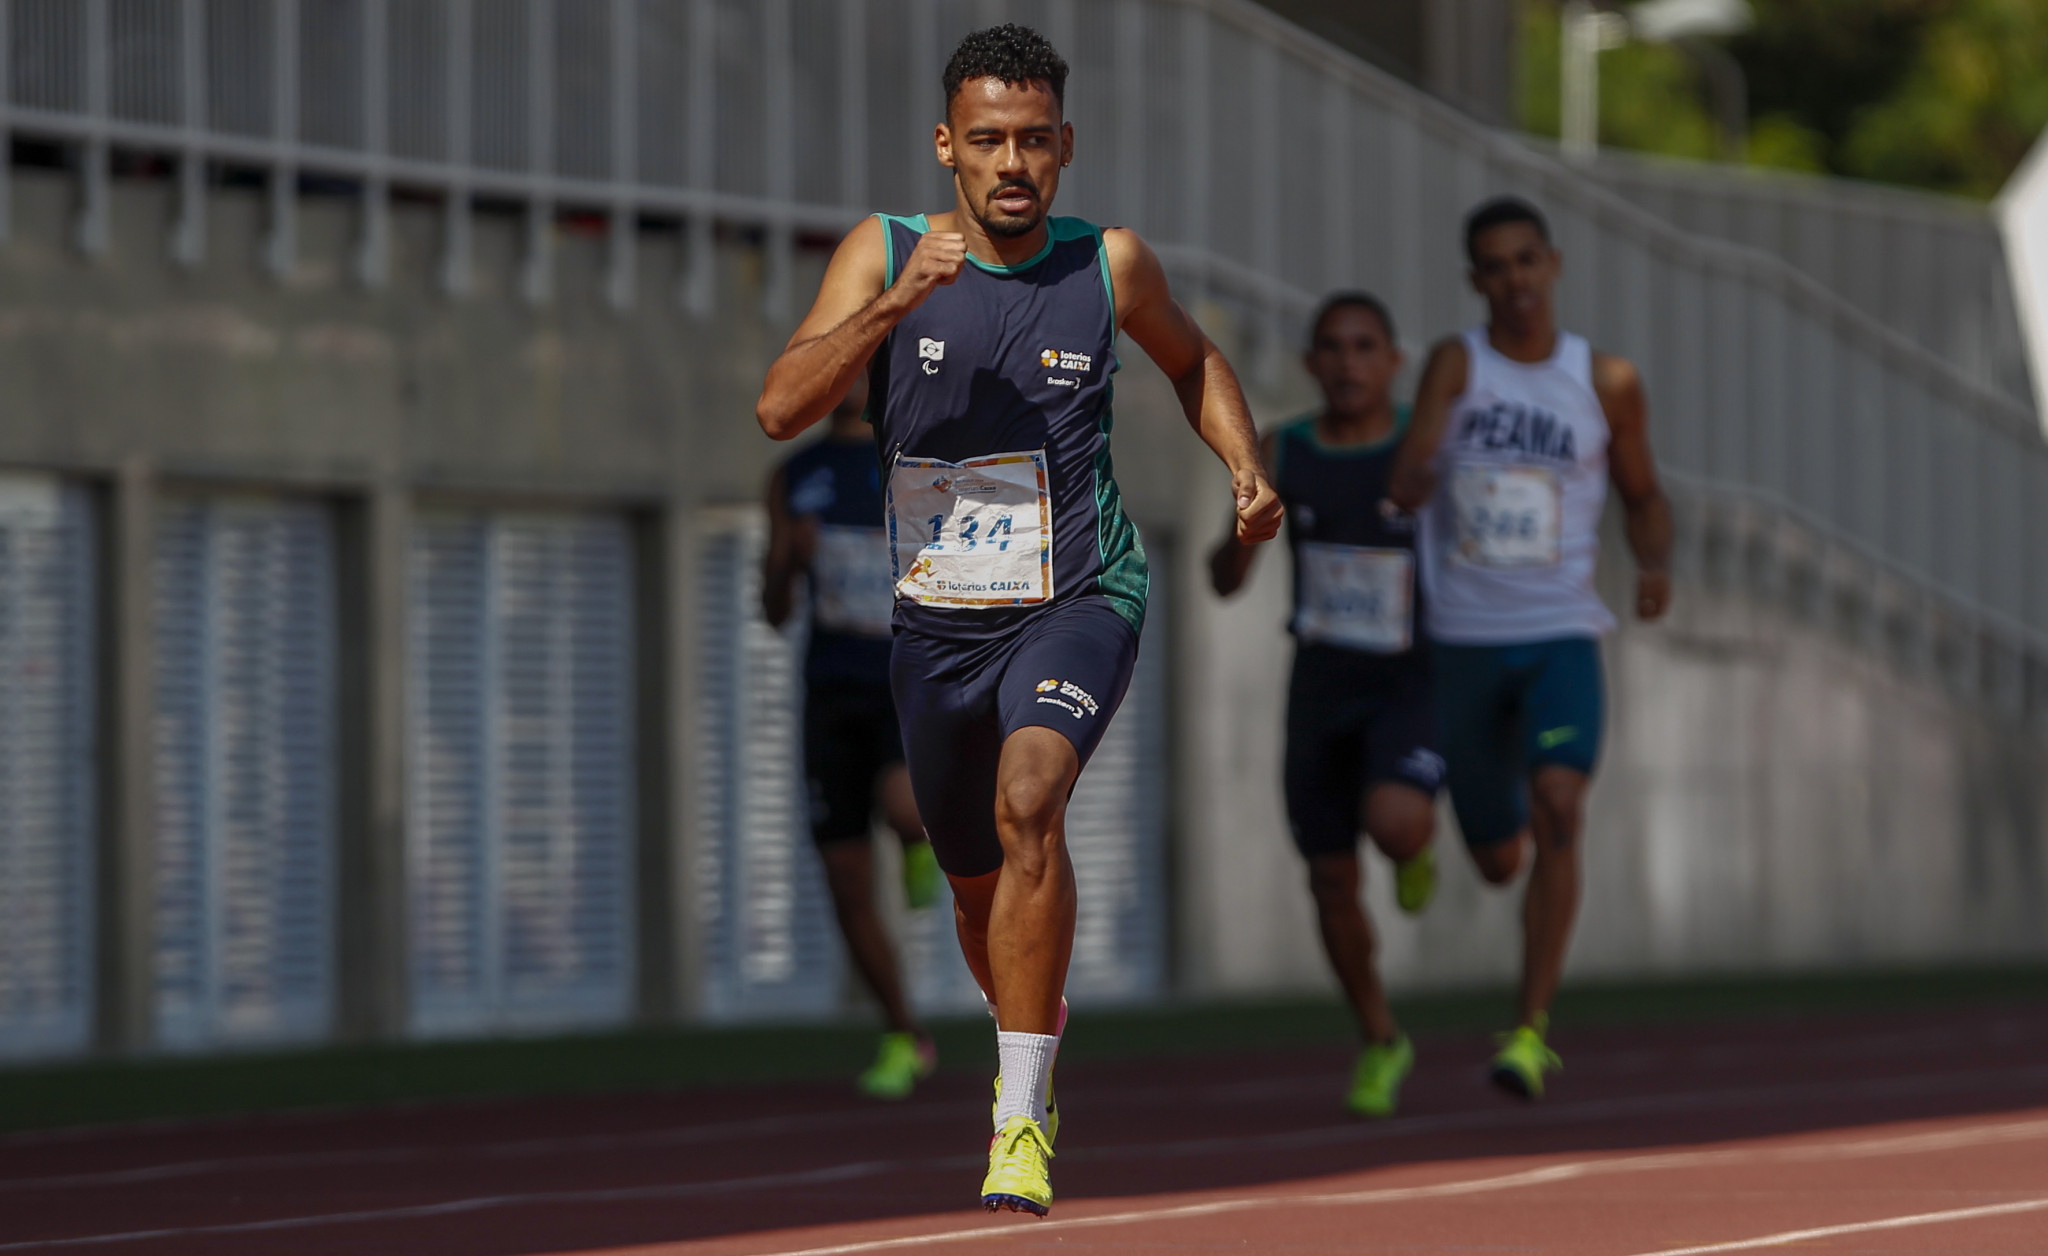 Brazilian runner Martins wins Americas Paralympic Committee award for April